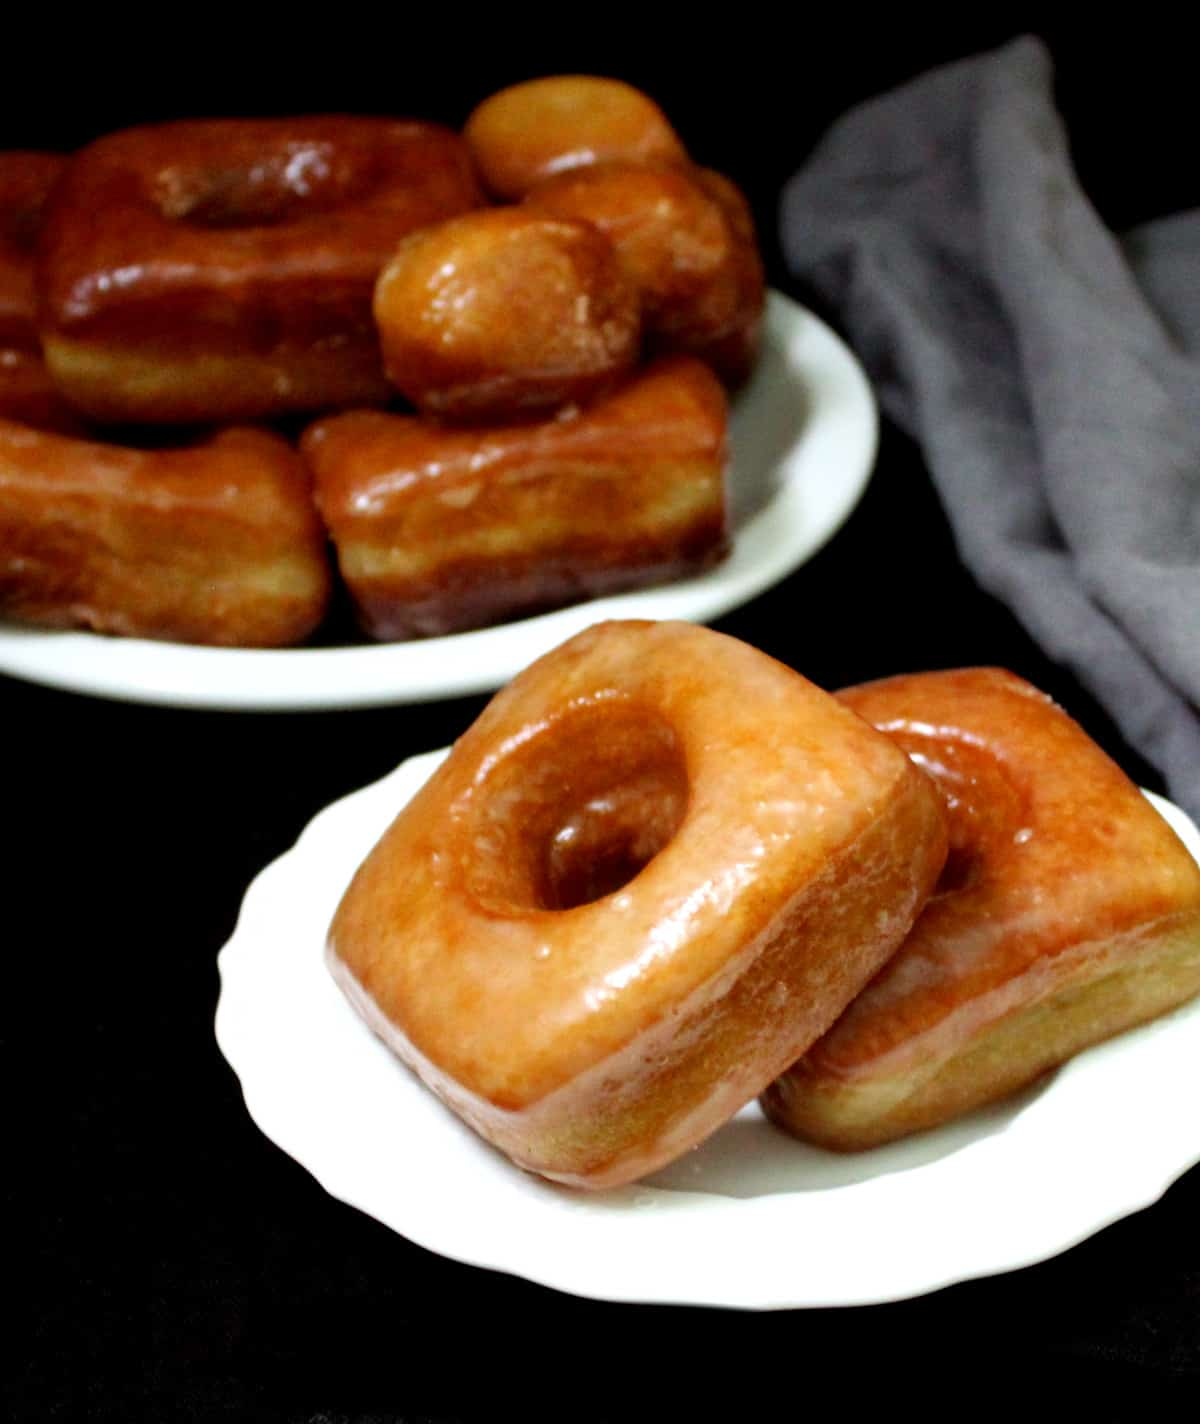 A close up of two vegan brioche donuts on a white plate with a stack of donuts and doughnut holes in the background, and a gray napkin on a black background.